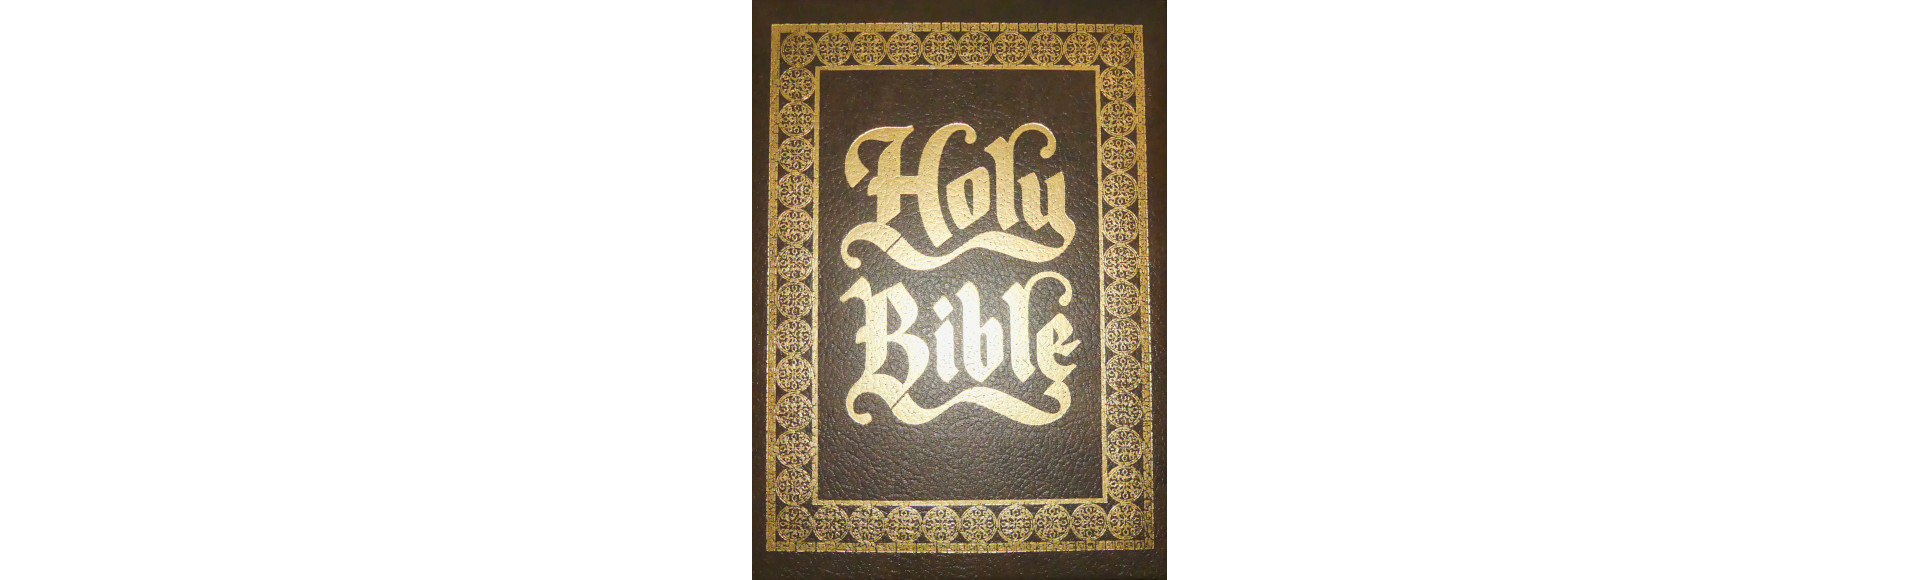 We teach the King James Version of the Bible